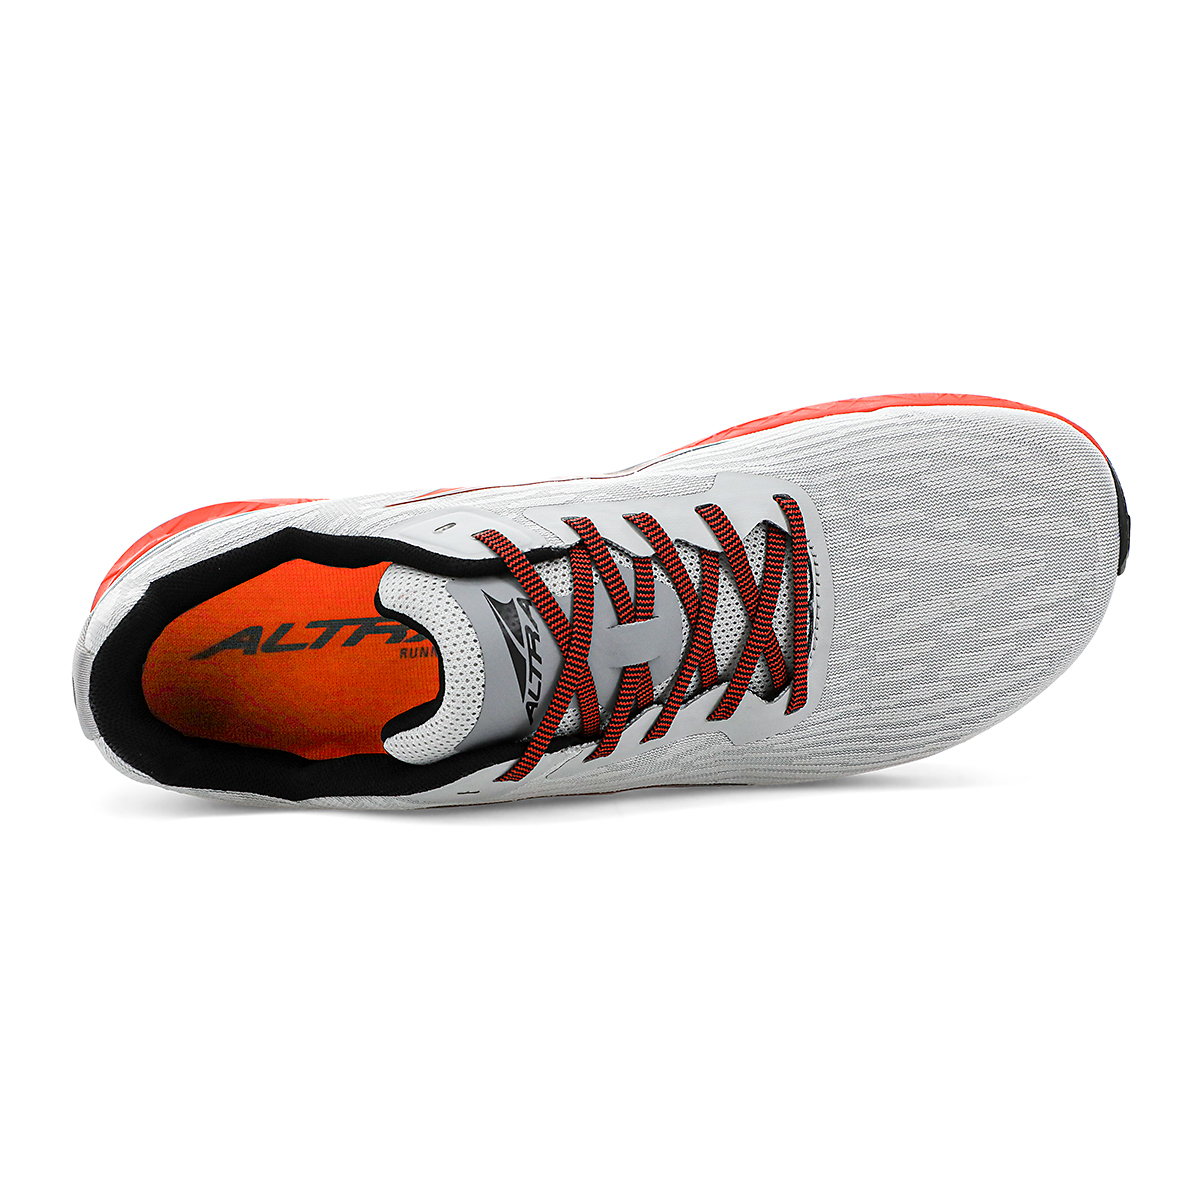 Men's Altra Rivera Running Shoe - Color: Gray/Orange - Size: 7 - Width: Regular, Gray/Orange, large, image 3